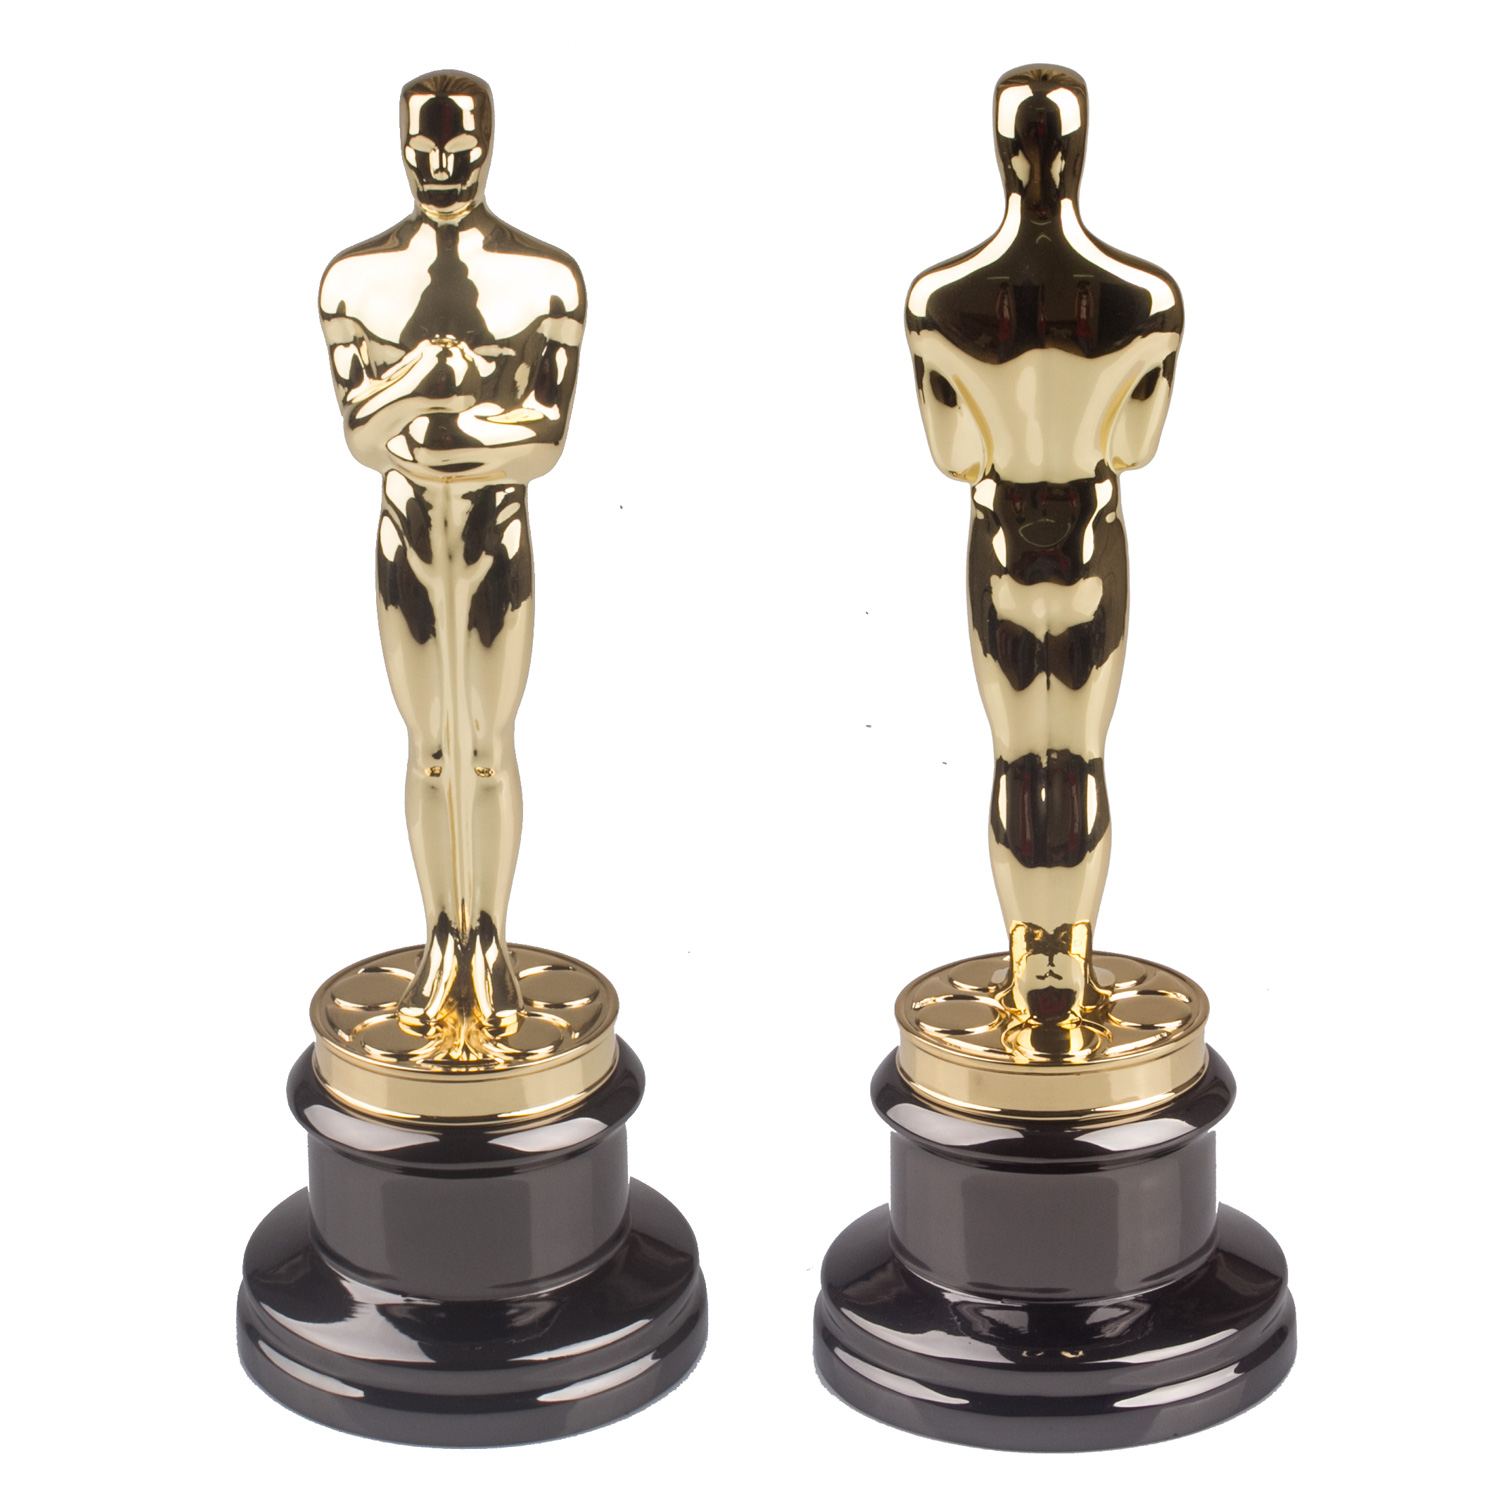 Academy Awards We All Dream In Gold together with Wholesale Metal Trophy Cup furthermore D8 AC D8 A7 D8 A6 D8 B2 D8 A9  D8 A7 D9 84 D9 81 D9 86 D8 A7 D9 86  D8 A7 D9 84 D8 B5 D8 BA D9 8A D8 B1 furthermore Stock Illustration Golden Statue Award D Rendered Illustration  position Isolated White Background Soft Shadows Image68463095 likewise 46211. on oscar movie awards trophies